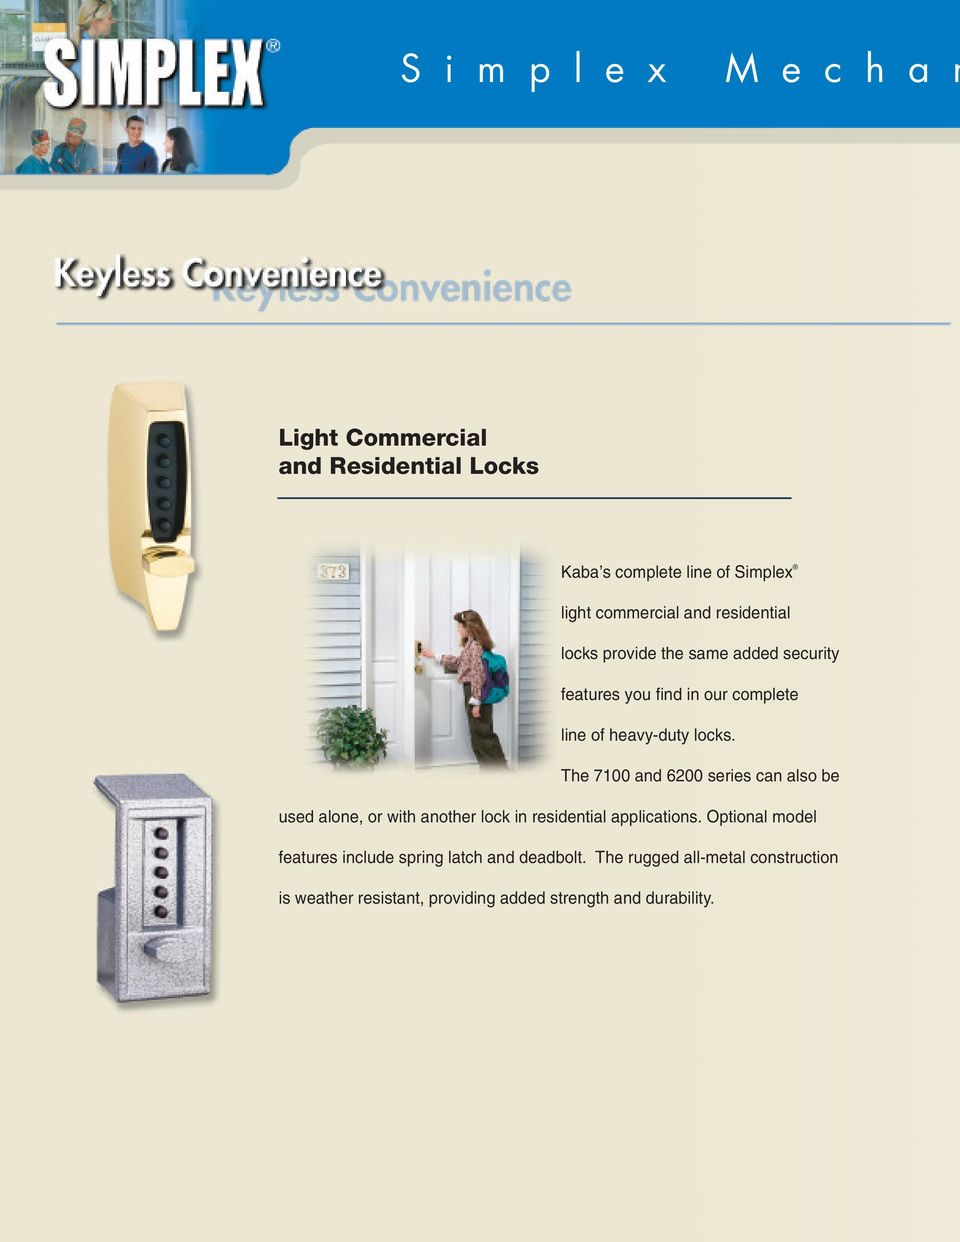 The 7100 and 6200 series can also be used alone, or with another lock in residential applications.